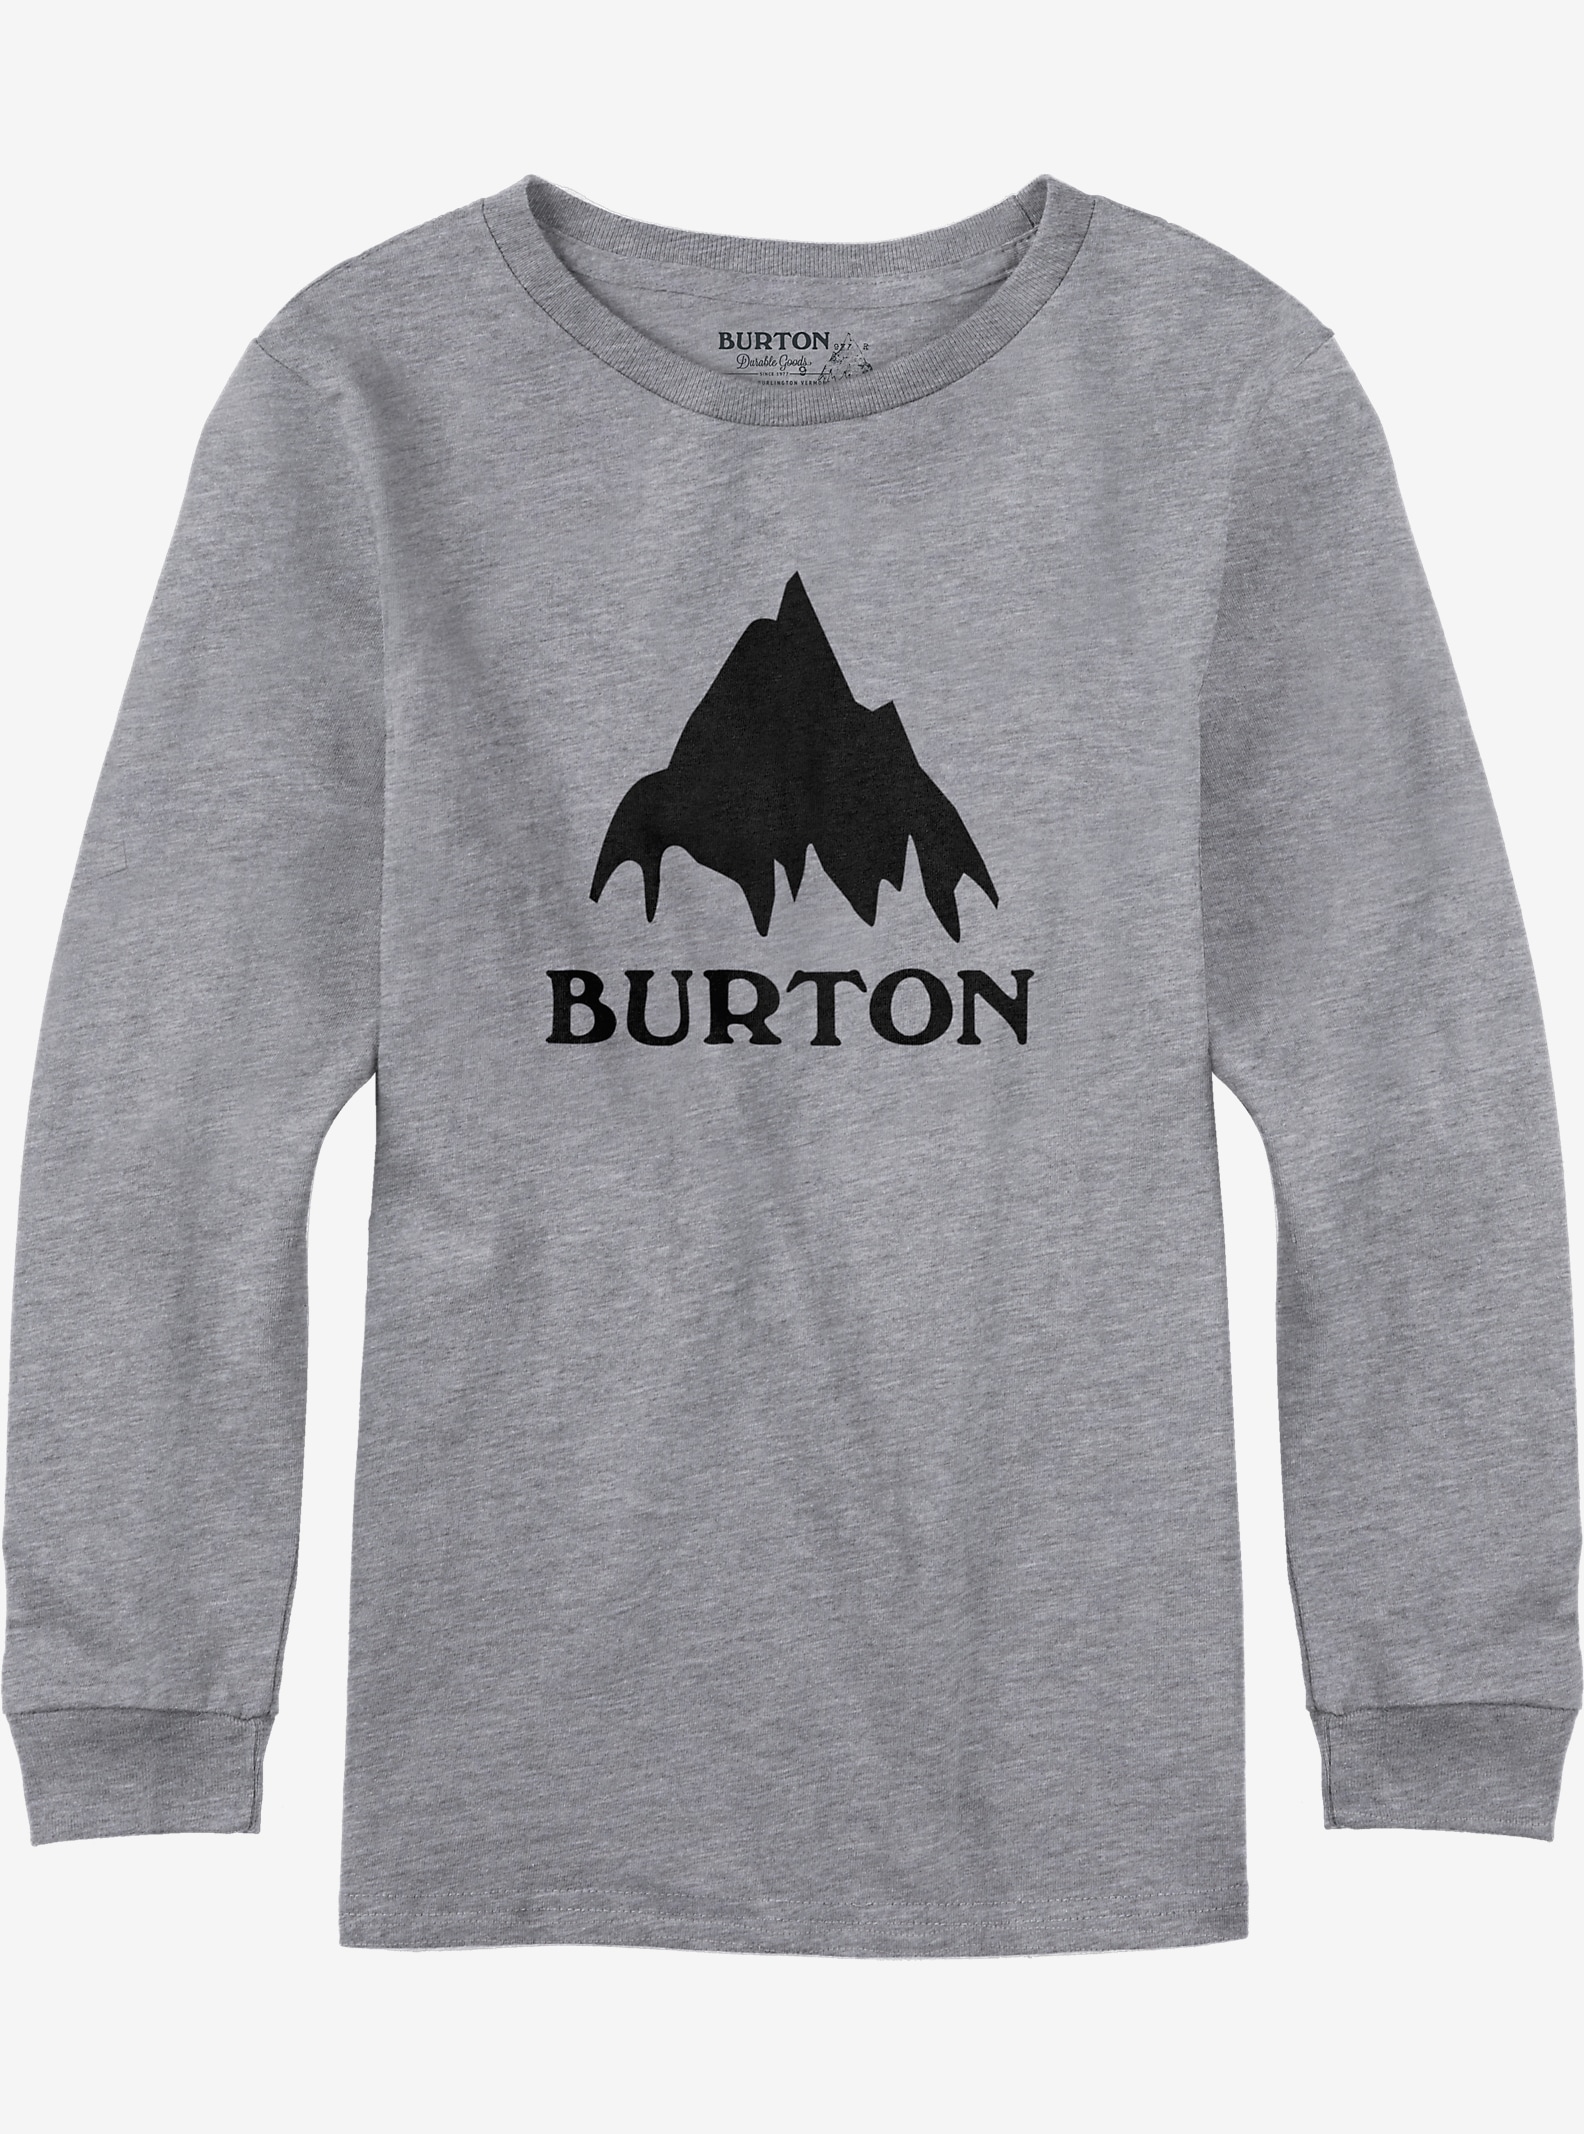 Burton - T-shirt à manches longues Classic Mountain affichage en Gray Heather